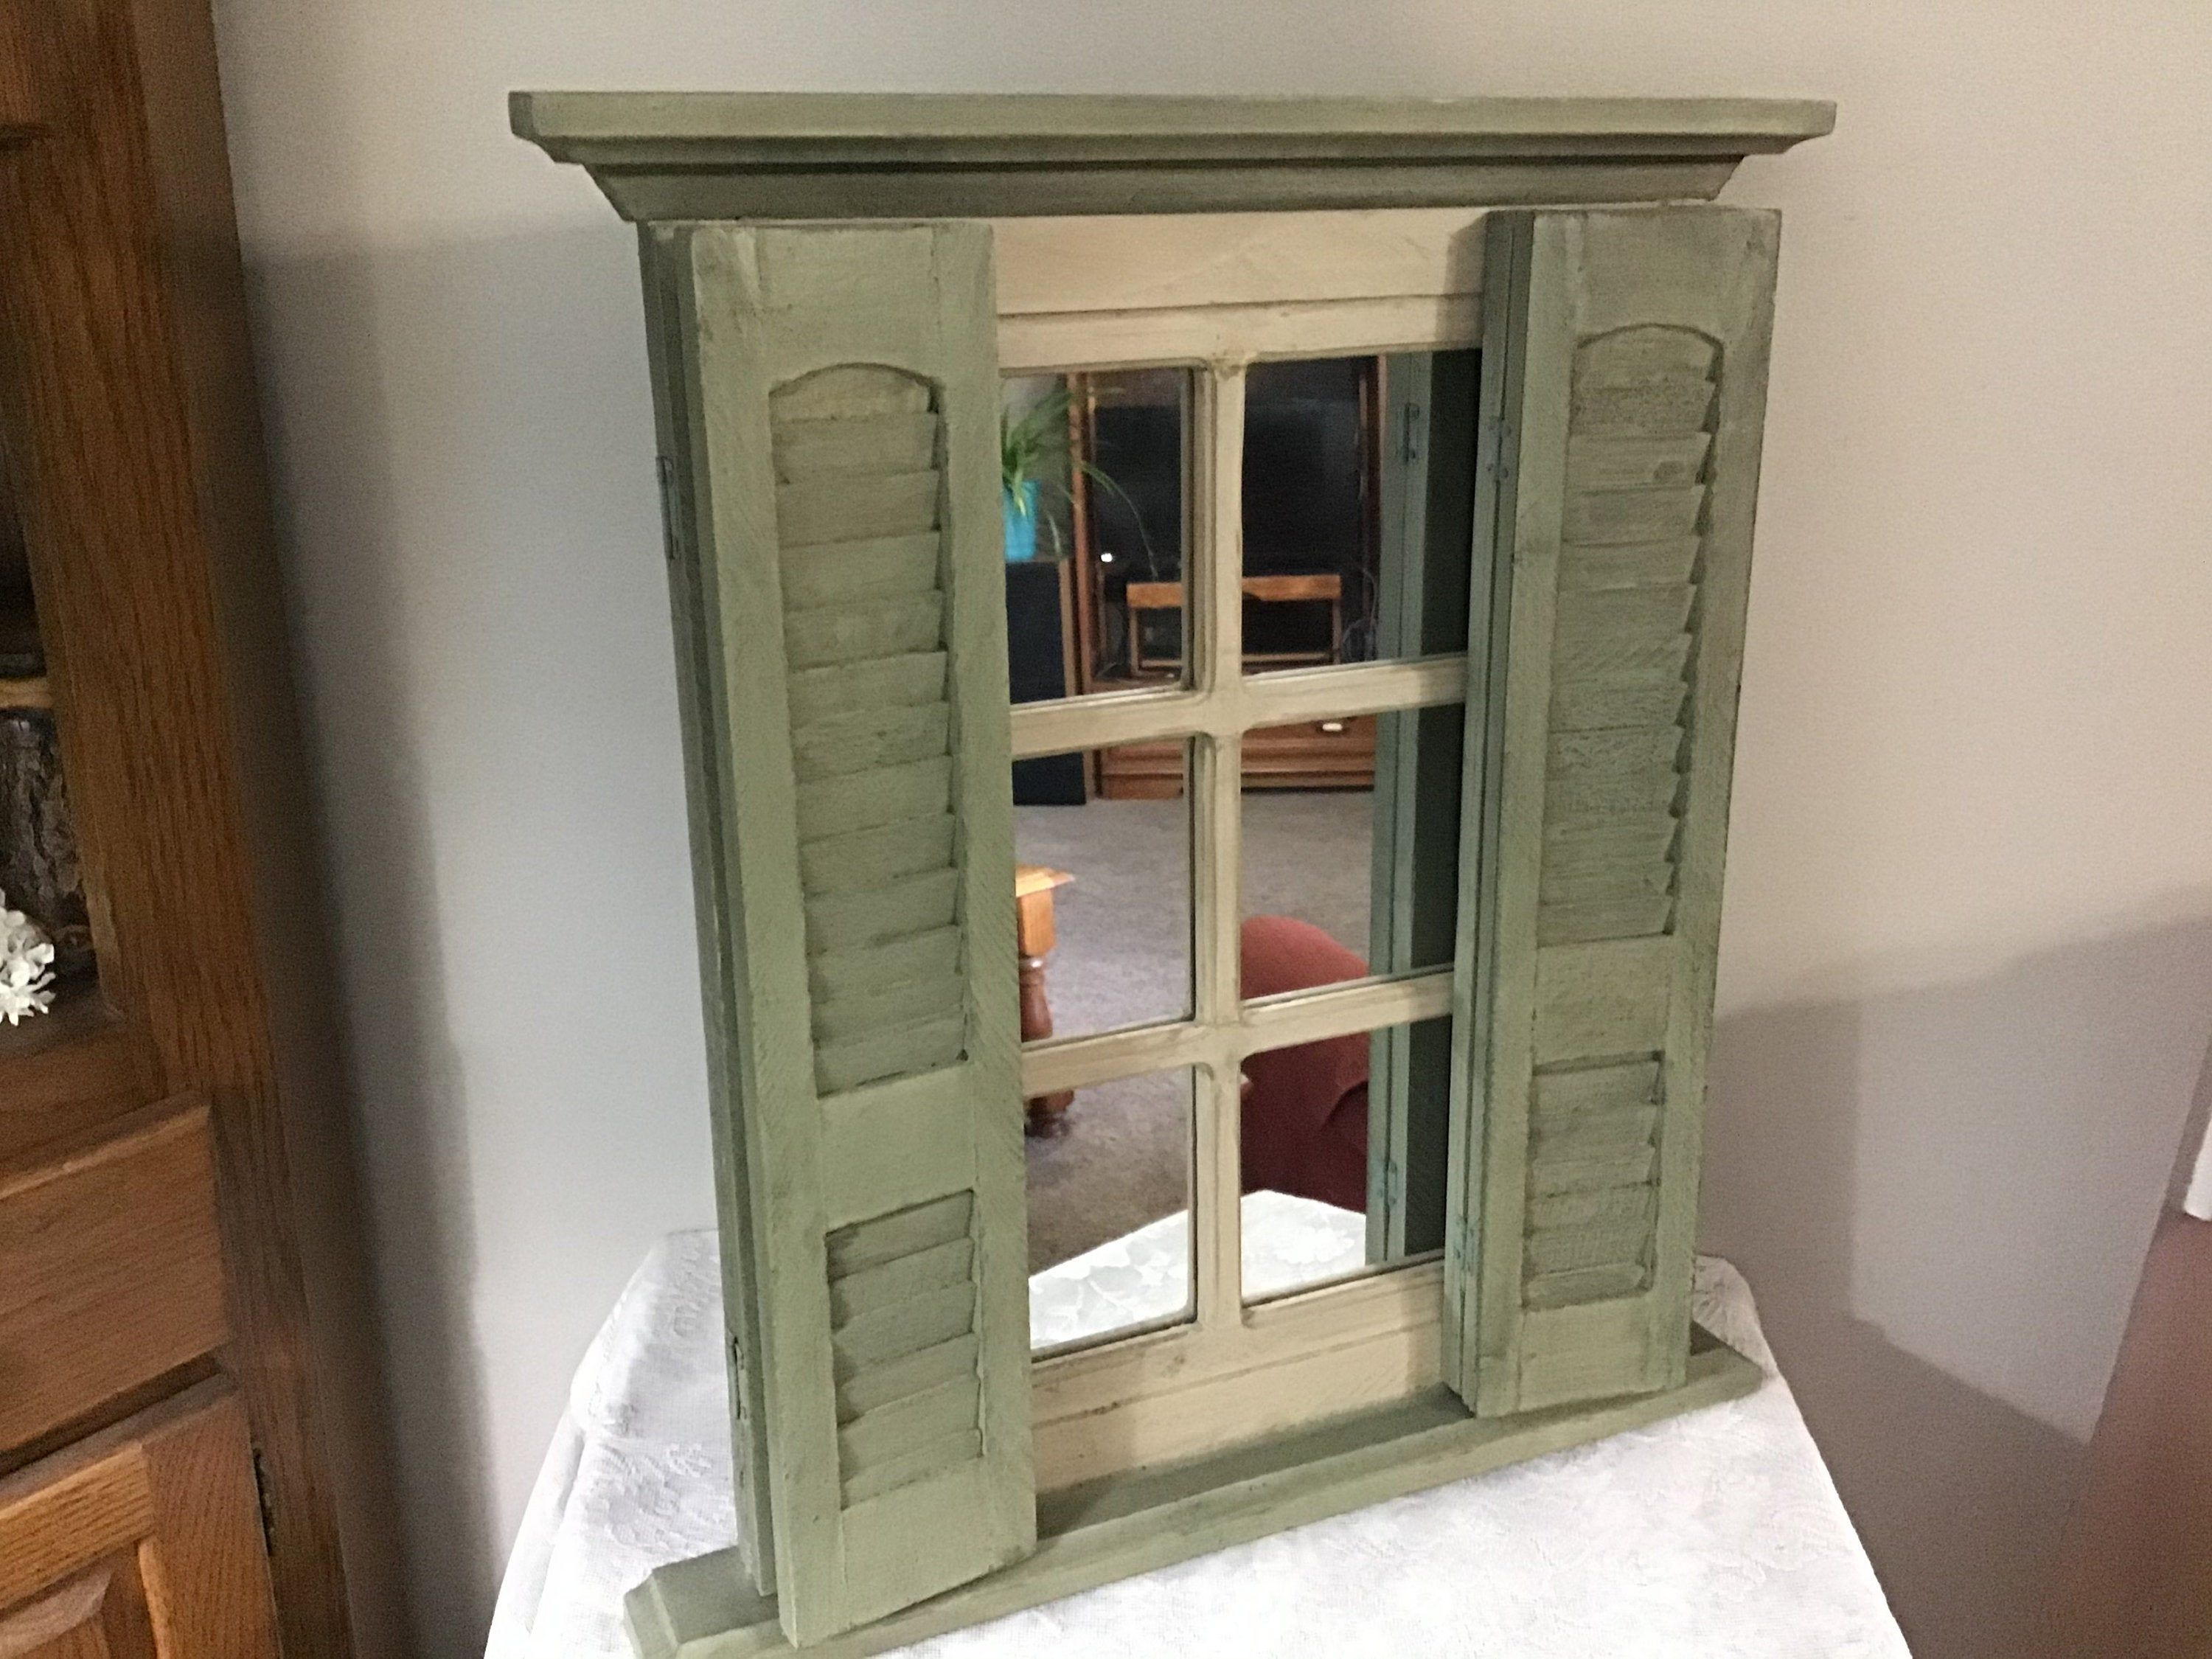 Vintage Mirrored Shutter Window Mirror With Shutters Wall Mirror With Doors Home Interiors Shutter Mirror Window Mirror Shutter Wall